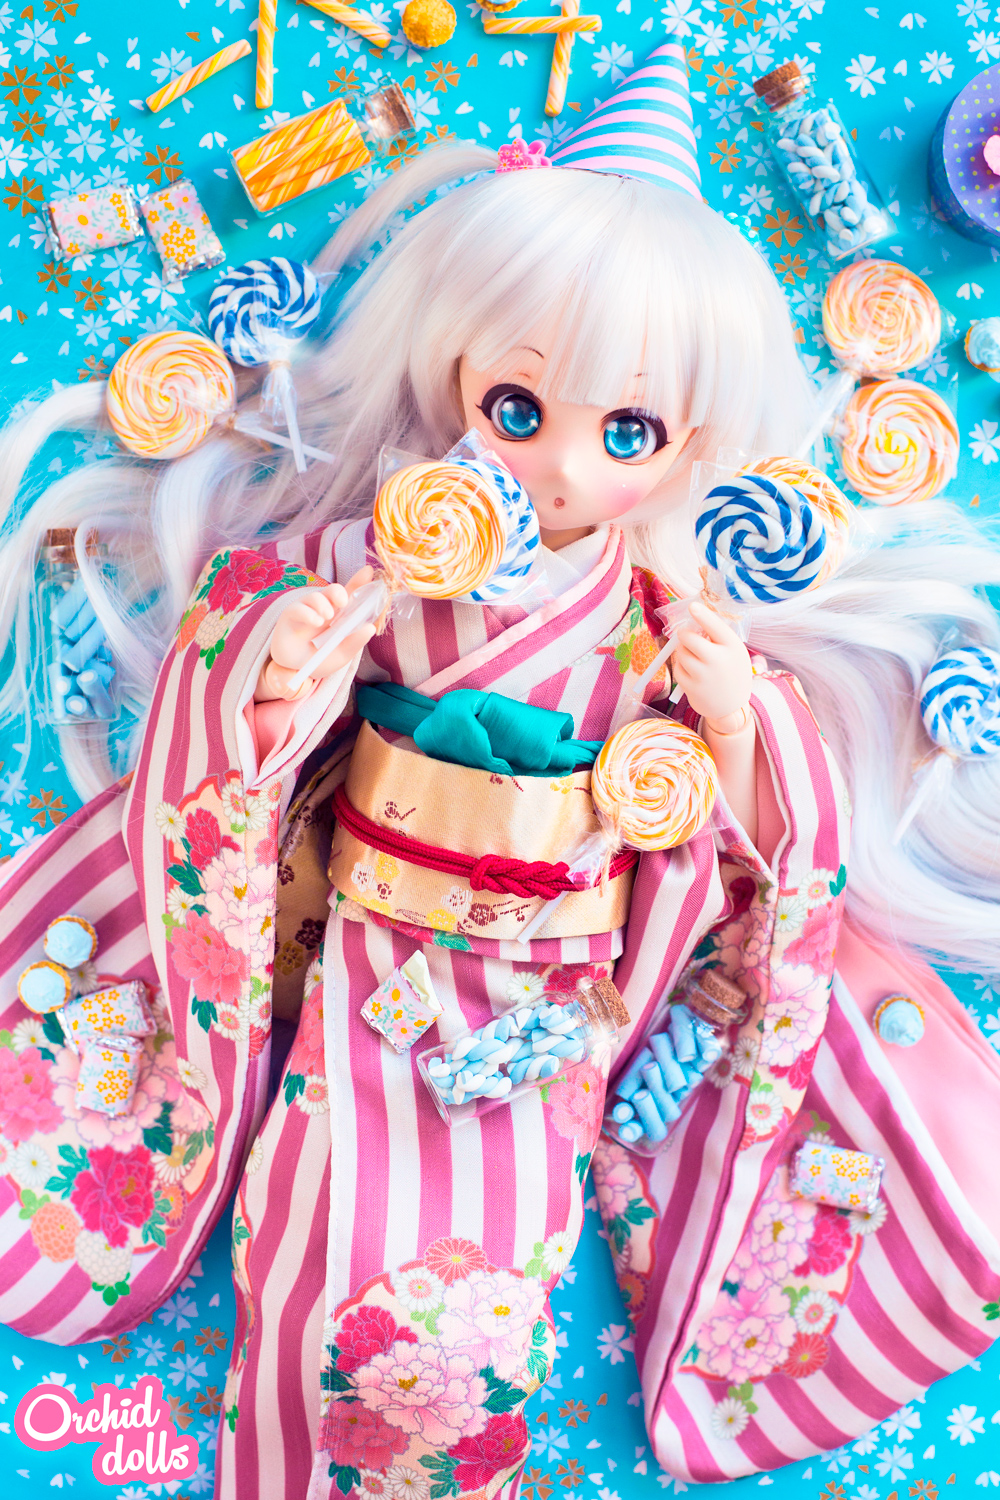 Custom Mini Dollfie Dream DDH-01 Nebula en Candyland